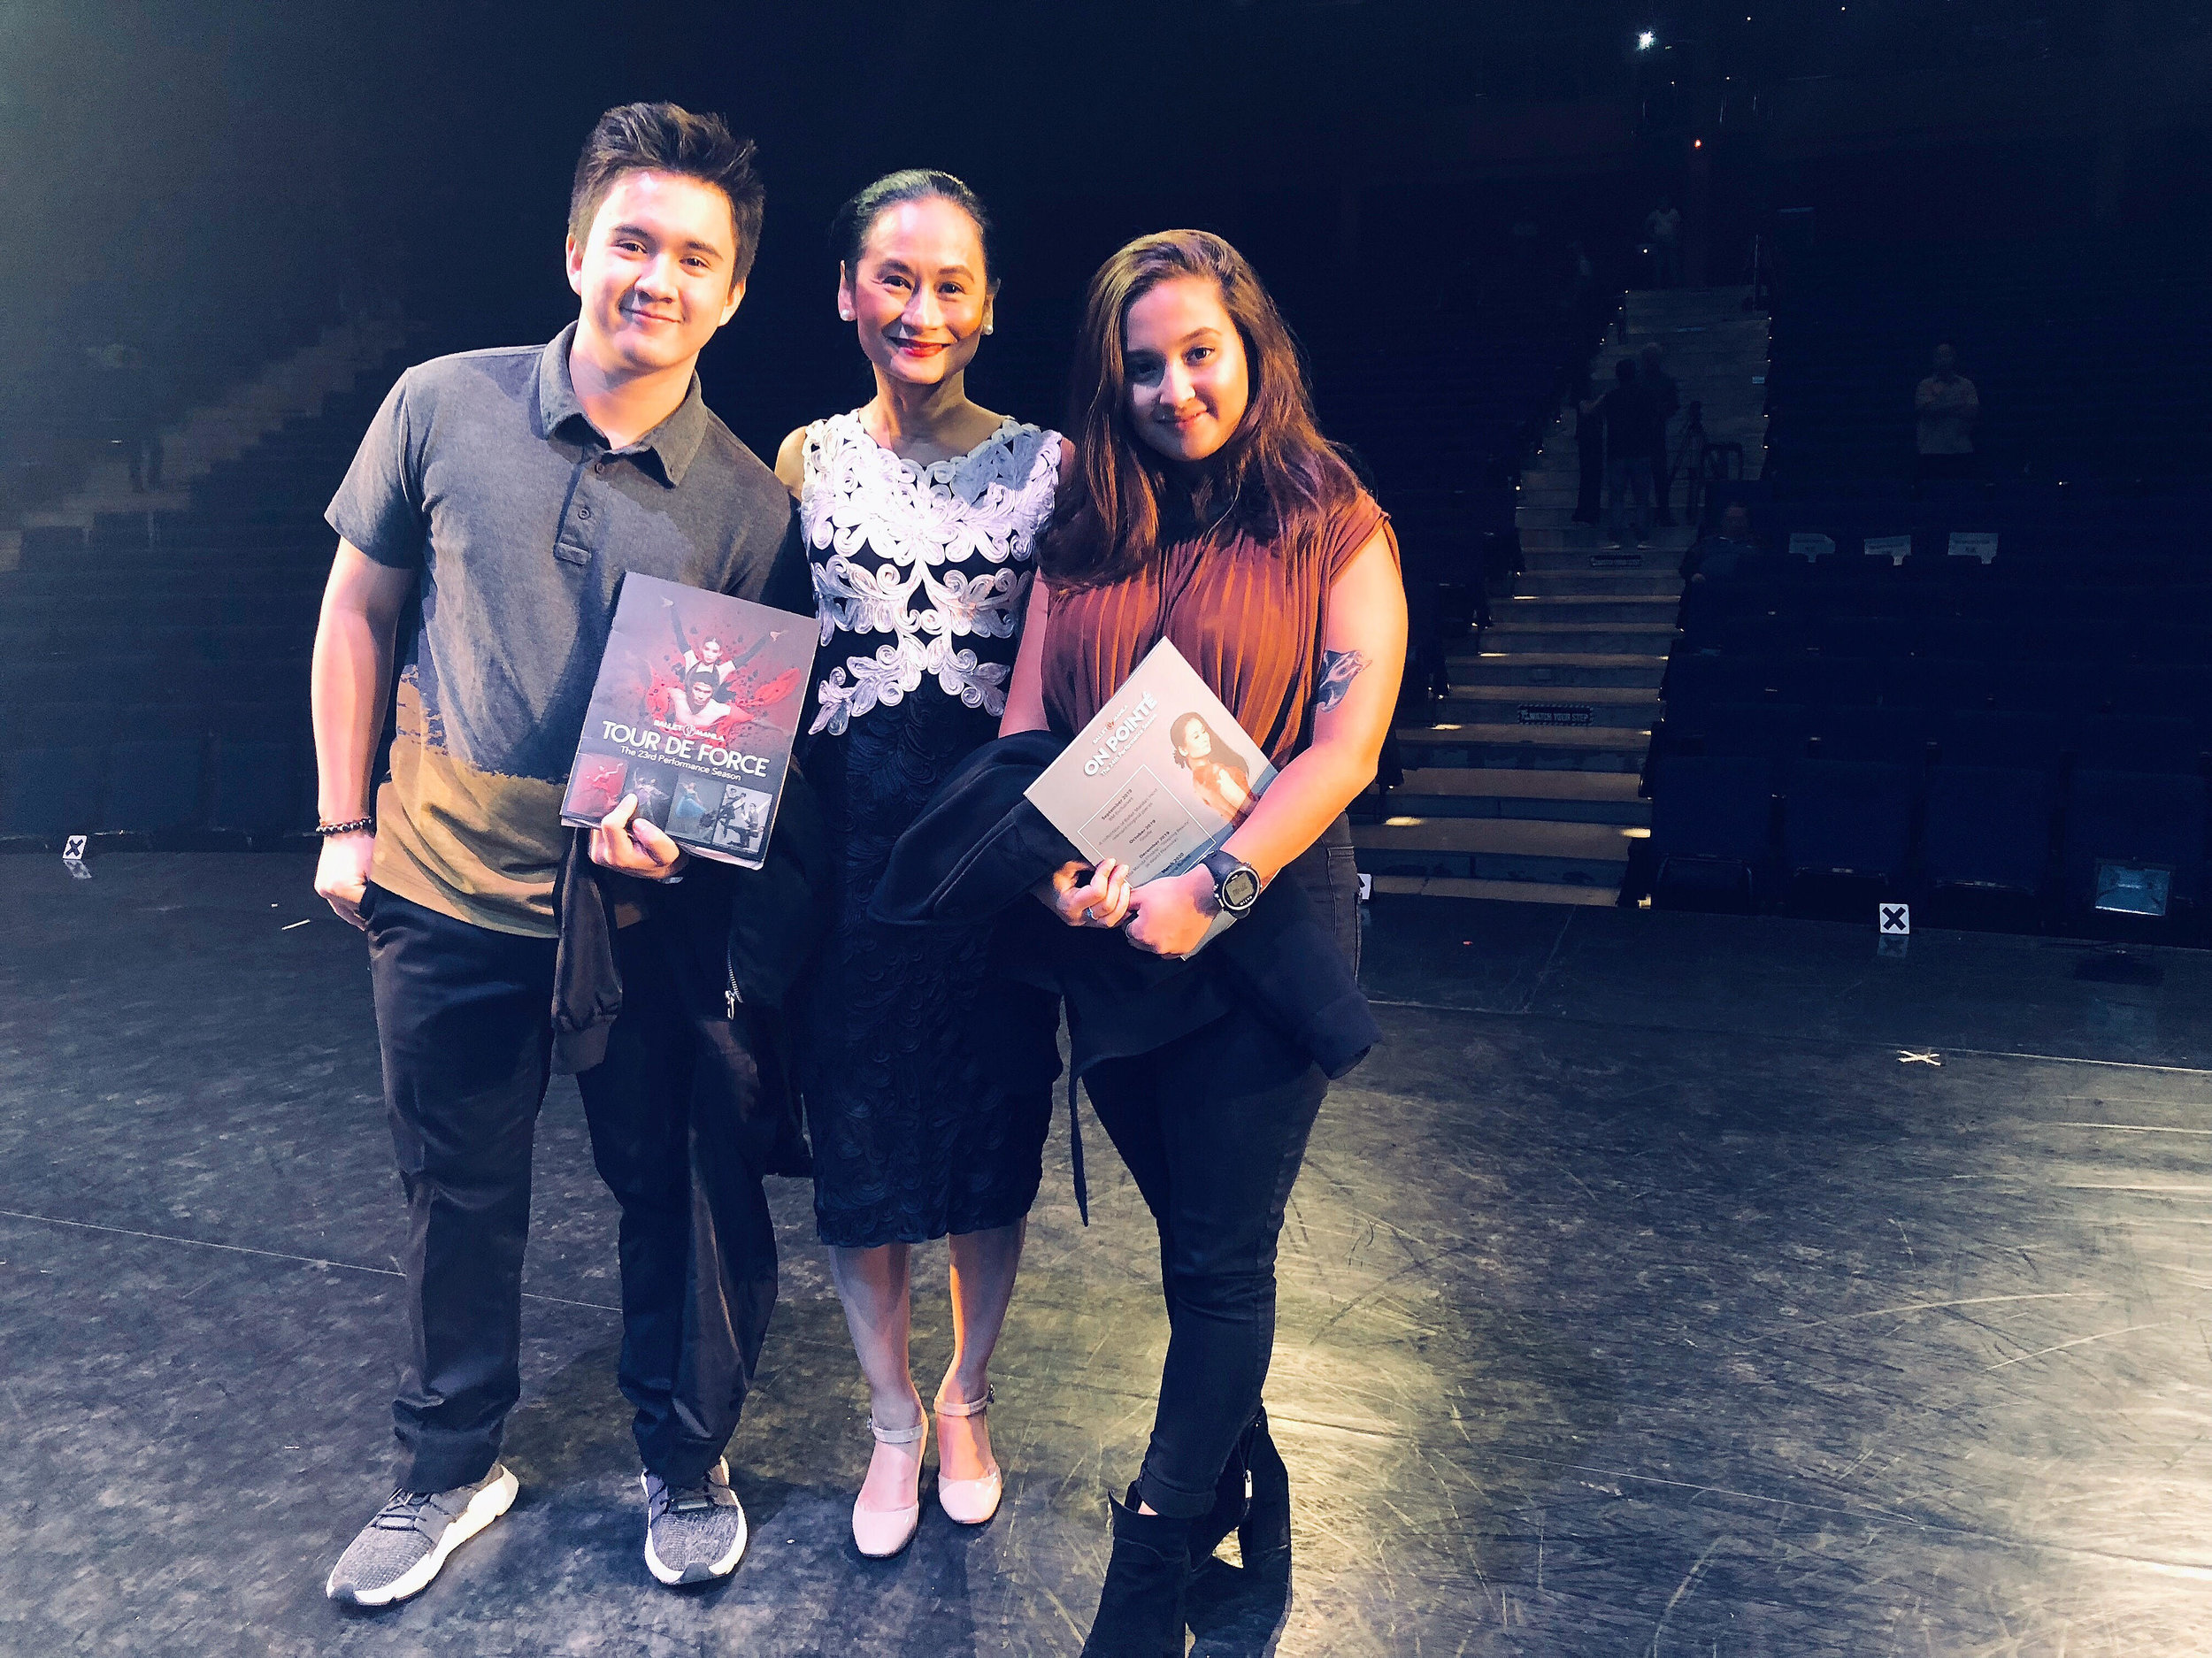 Missy returns to familiar turf – the stage of the Aliw Theater – where she poses with her mom Lisa and brother Mac after watching one of the shows featured in Ballet Manila's 23rd performance season. Photo courtesy of Missy Macuja-Elizalde